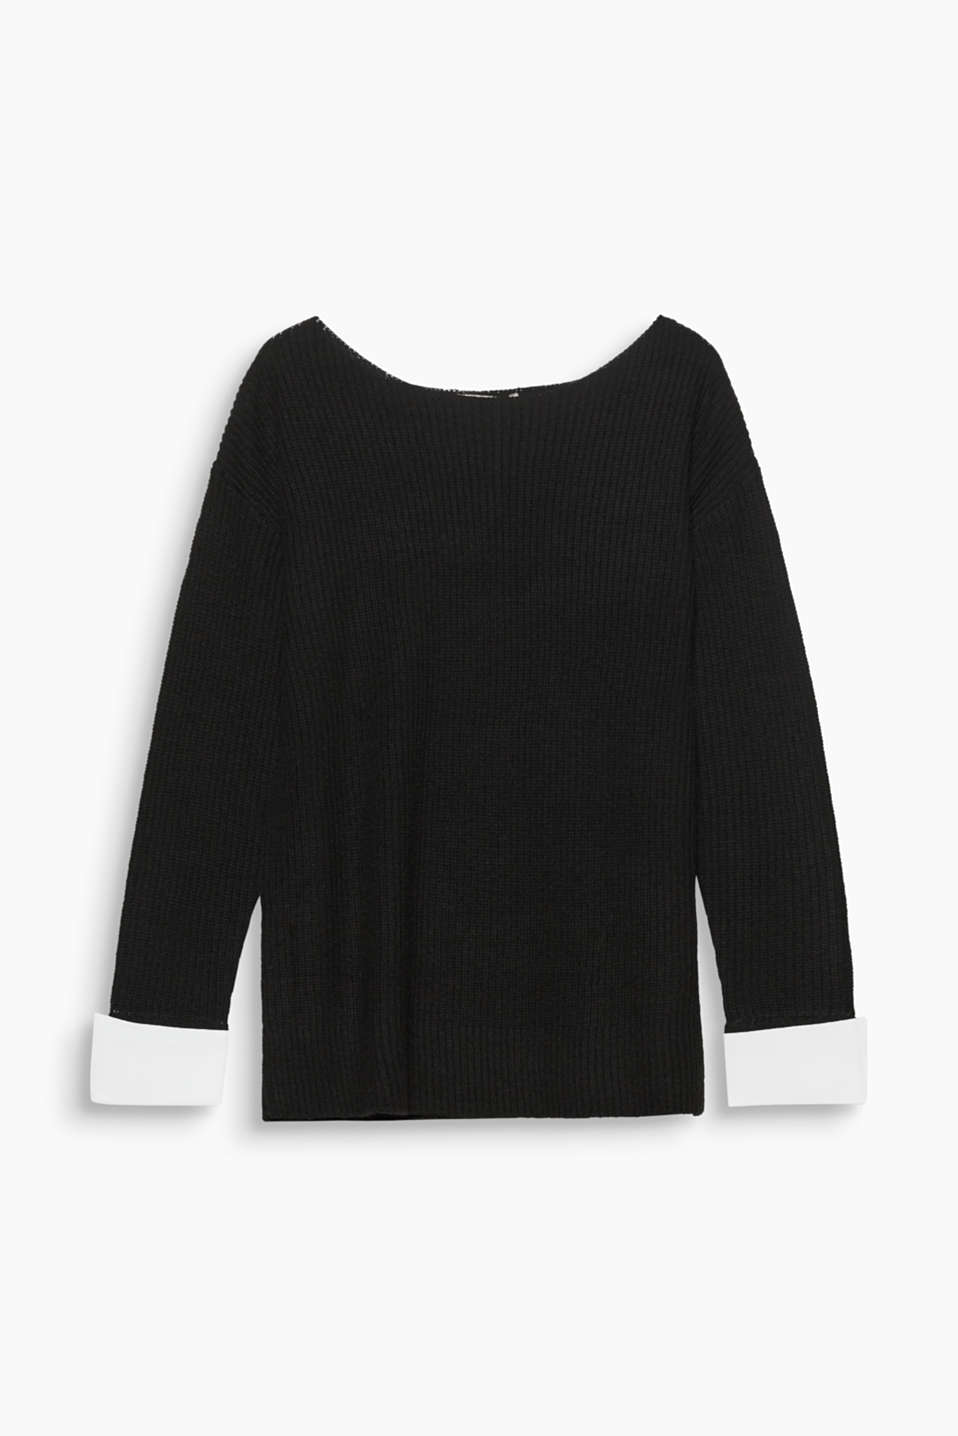 Wide cuffs made of cotton cloth add a smart accent to this soft, rib knit jumper.